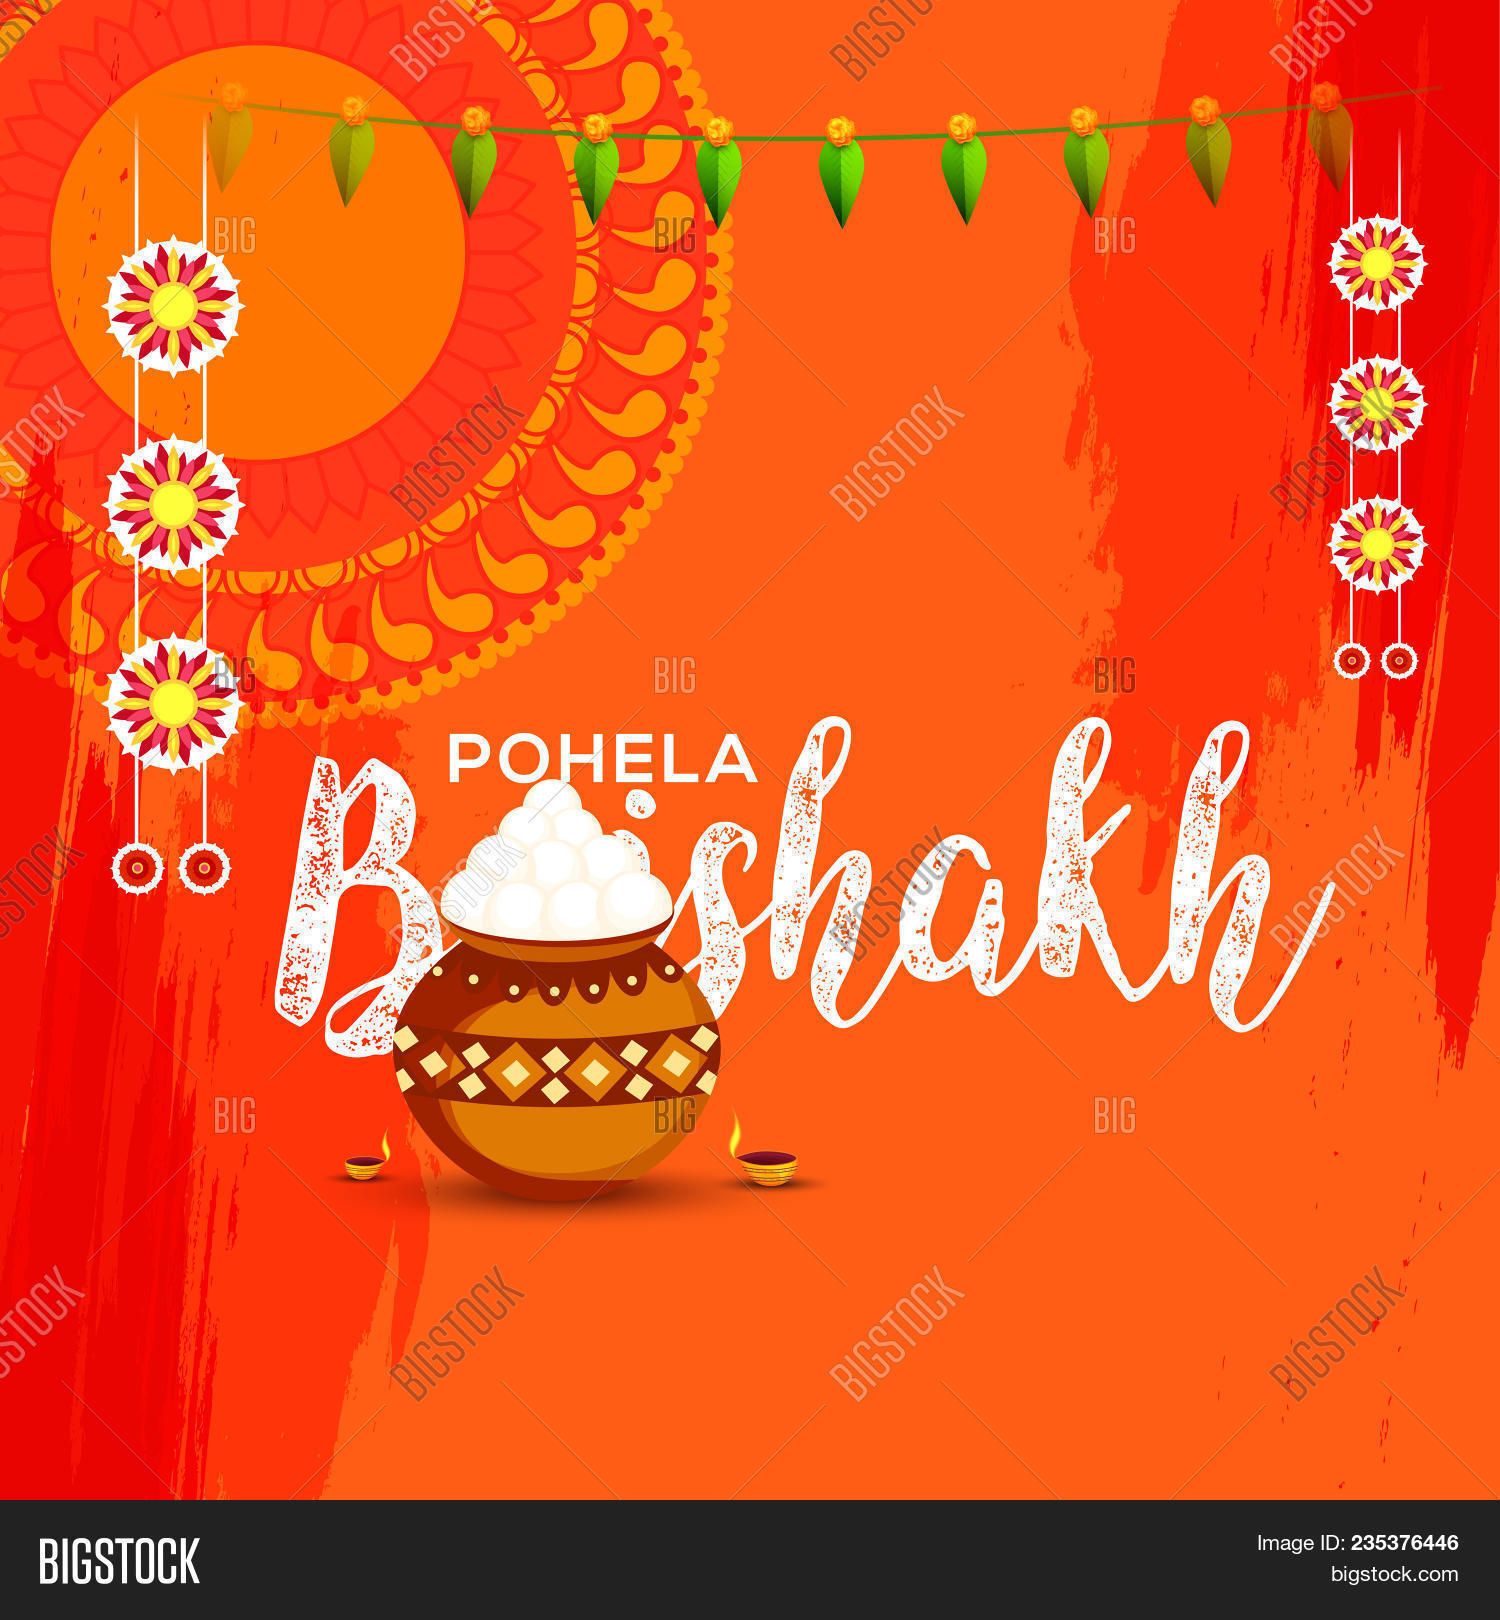 Poster banner bengali image photo free trial bigstock poster or banner of bengali new year pohela boishakh greeting card background m4hsunfo